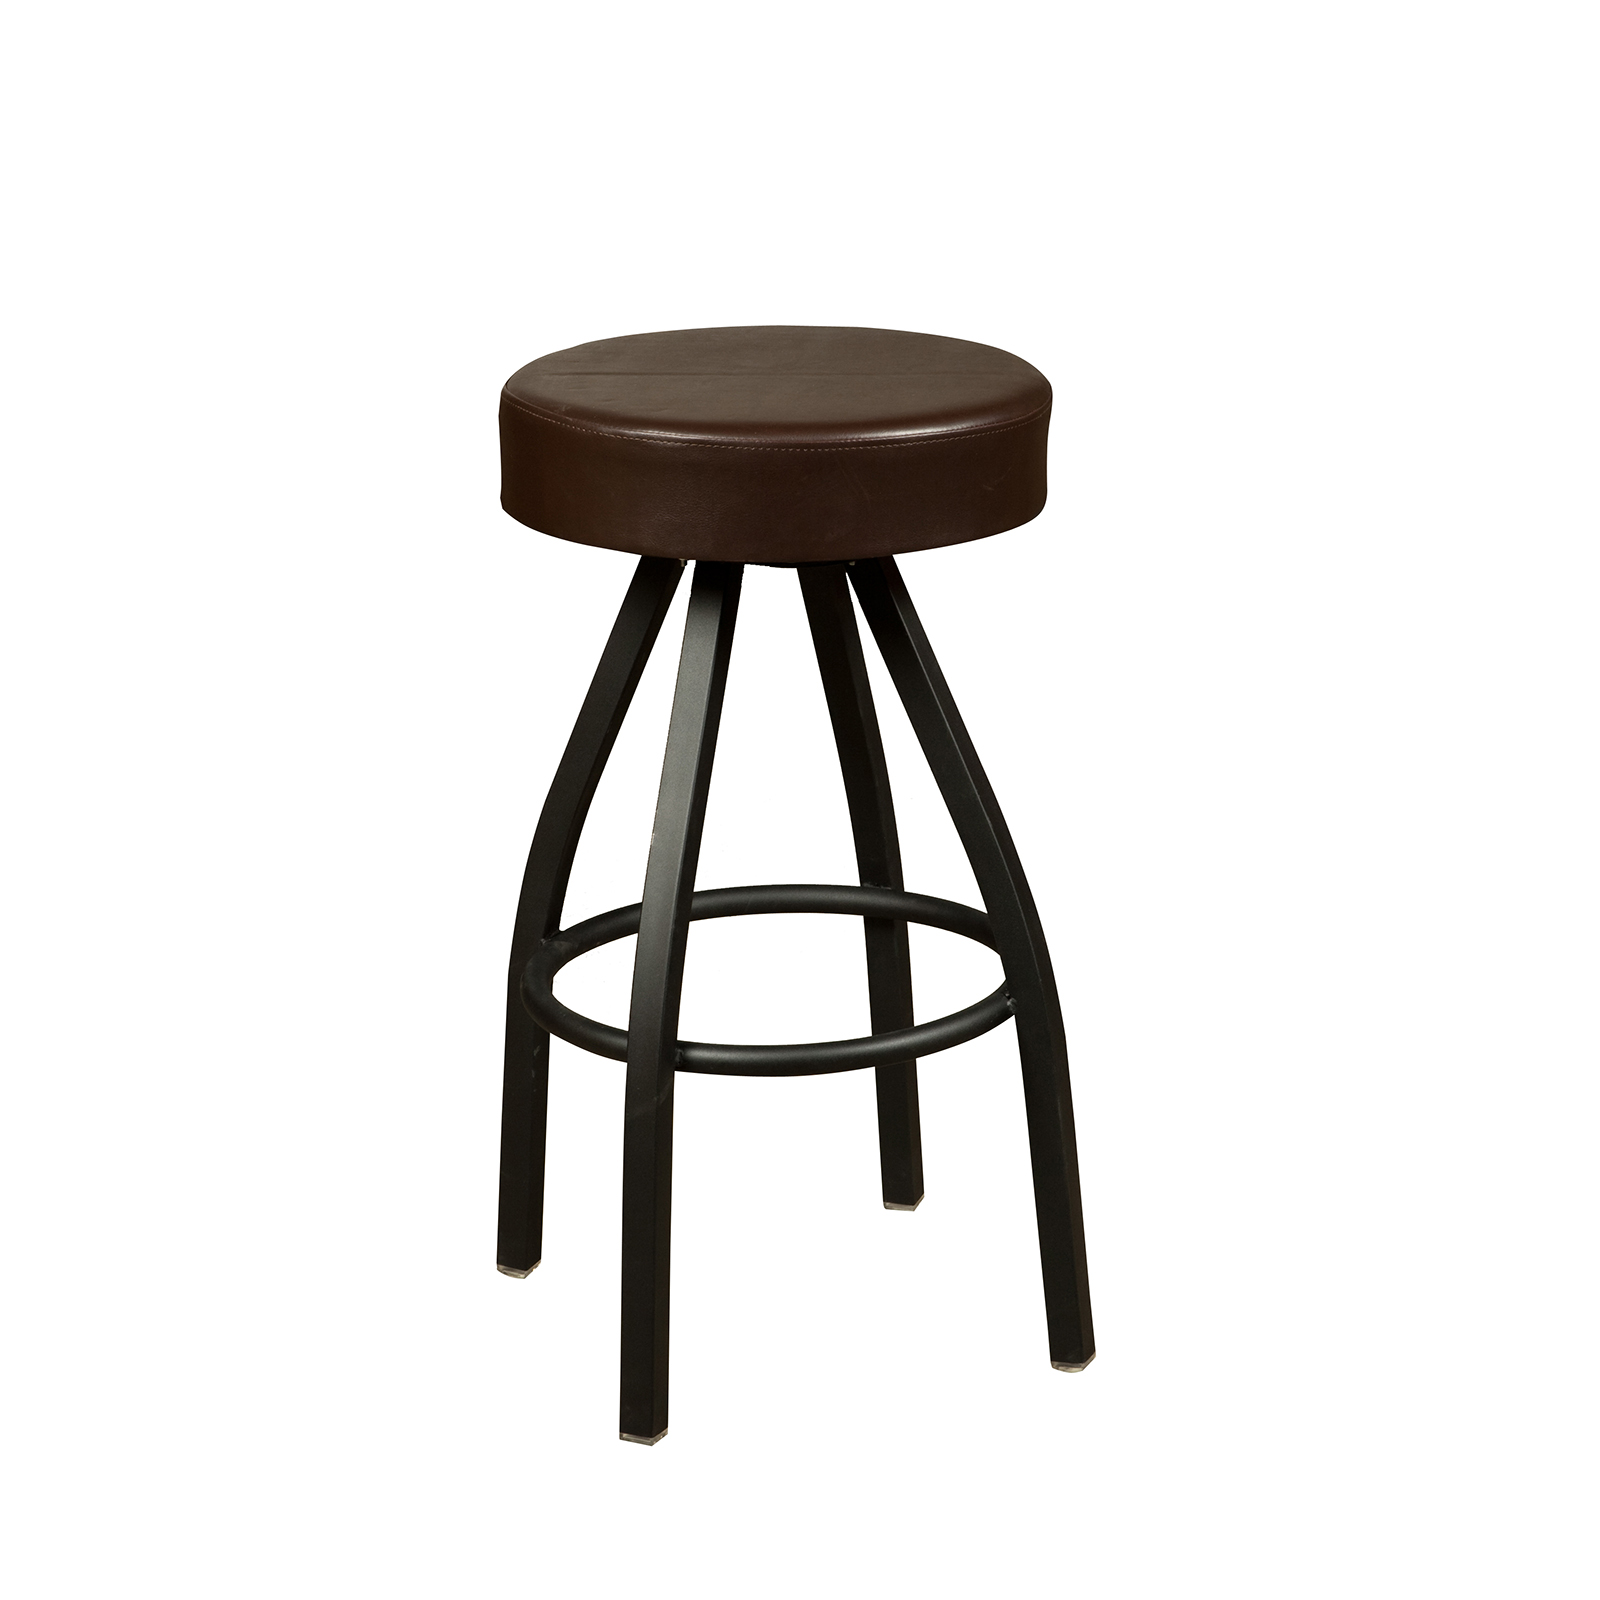 Oak Street SL3132-ESP bar stool, swivel, indoor